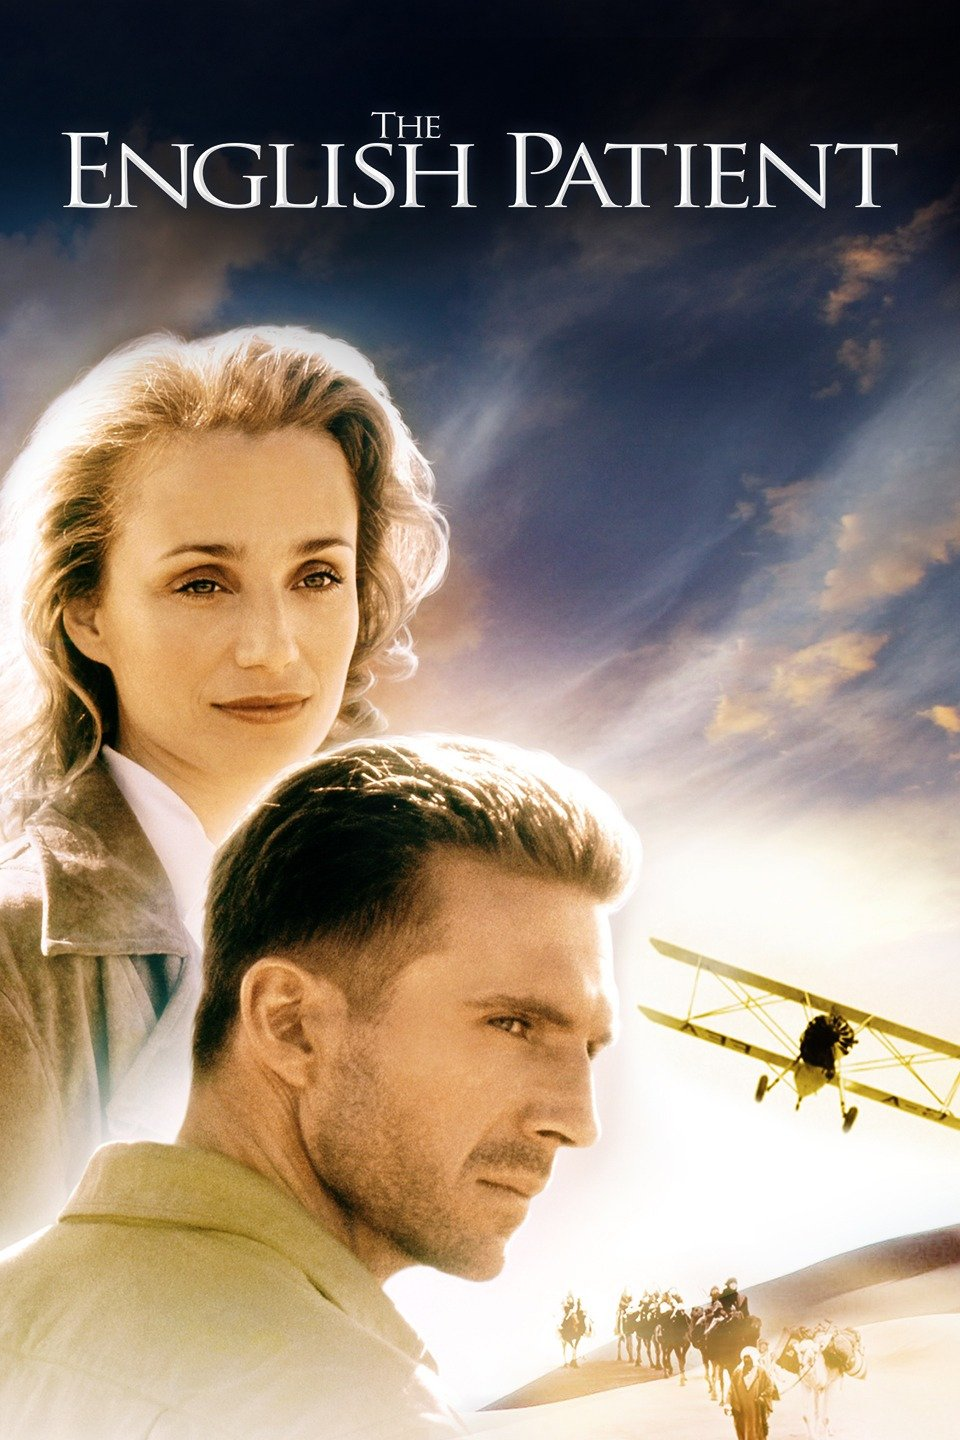 The English Patient movie